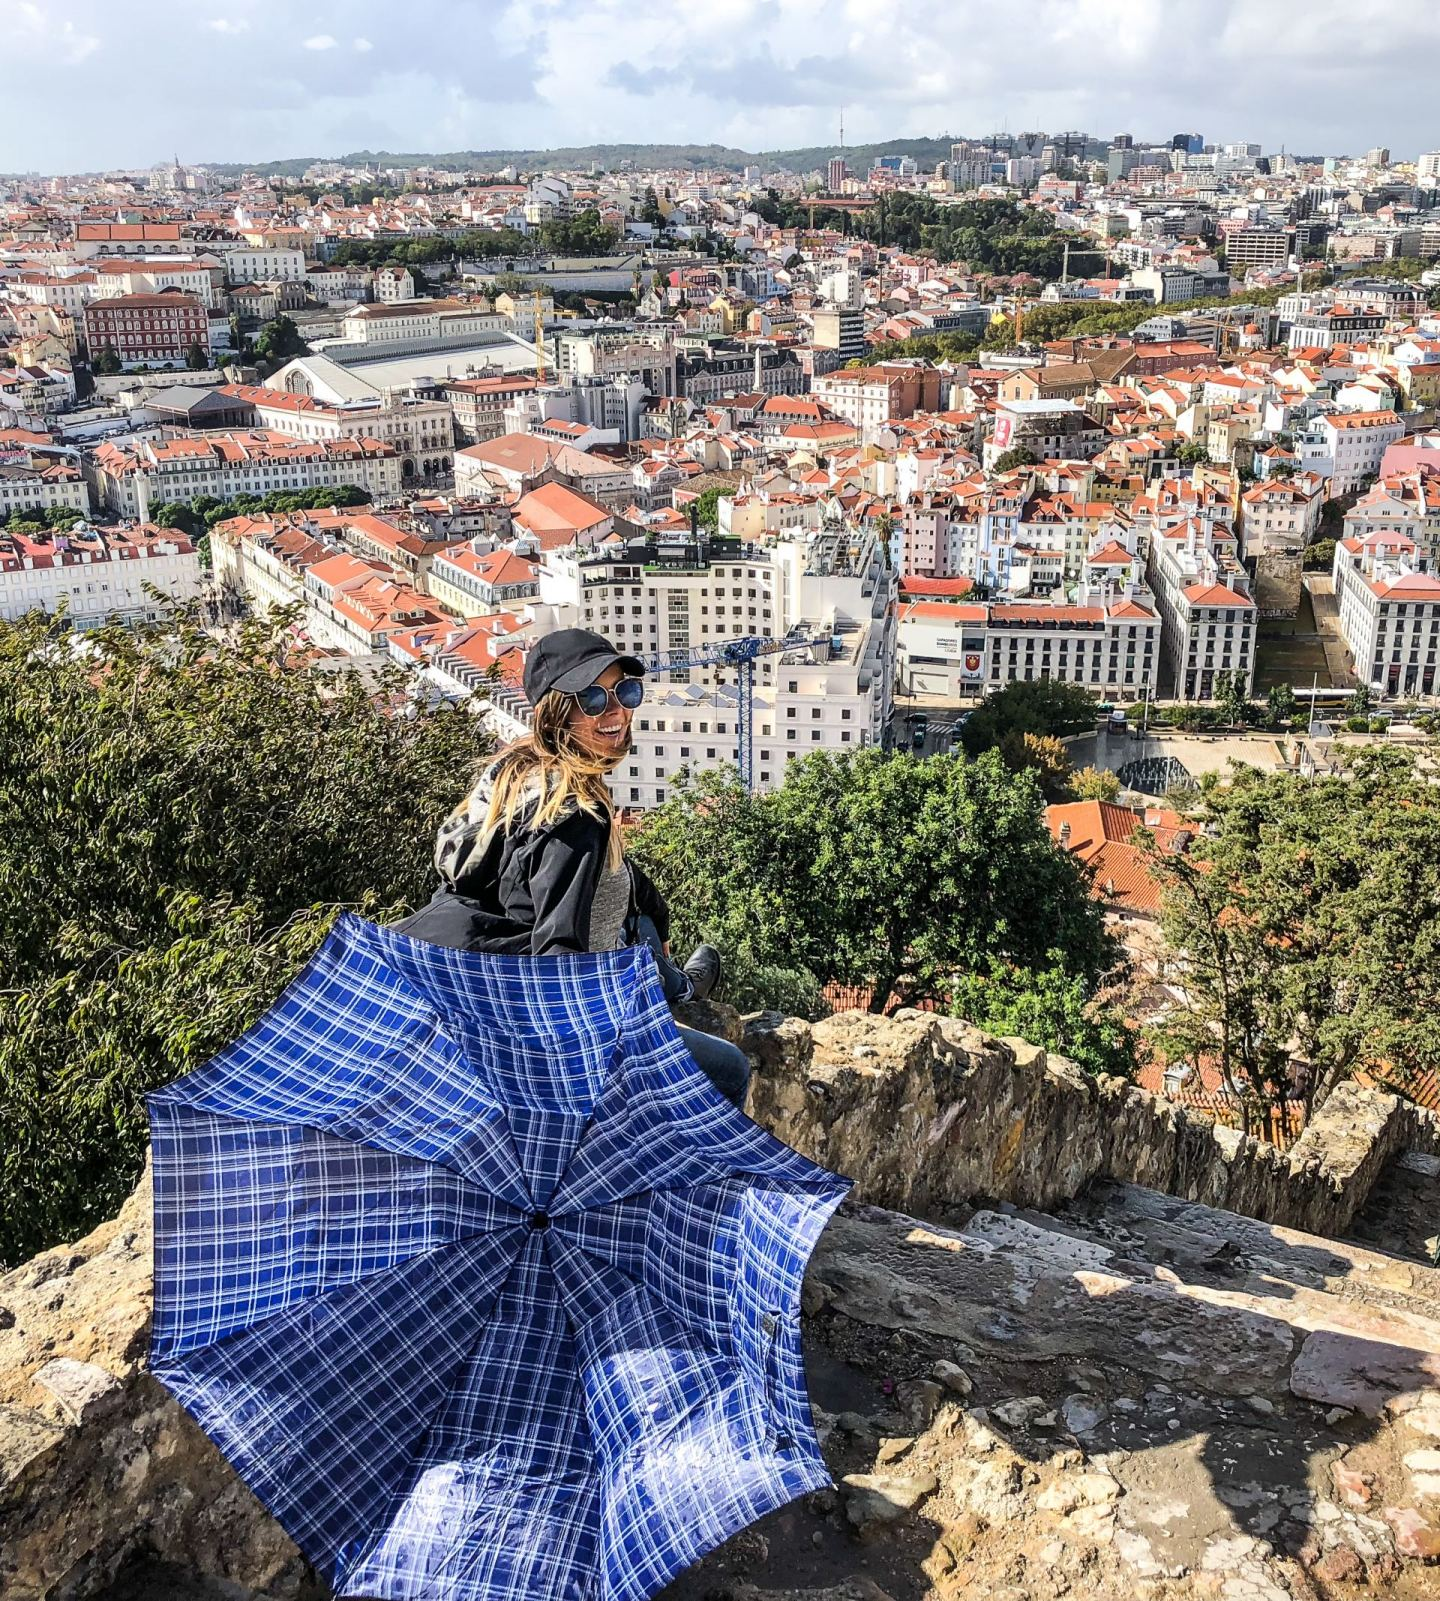 Lisbon, Portugal: Top Things to Do & Where to Stay on a Short Trip